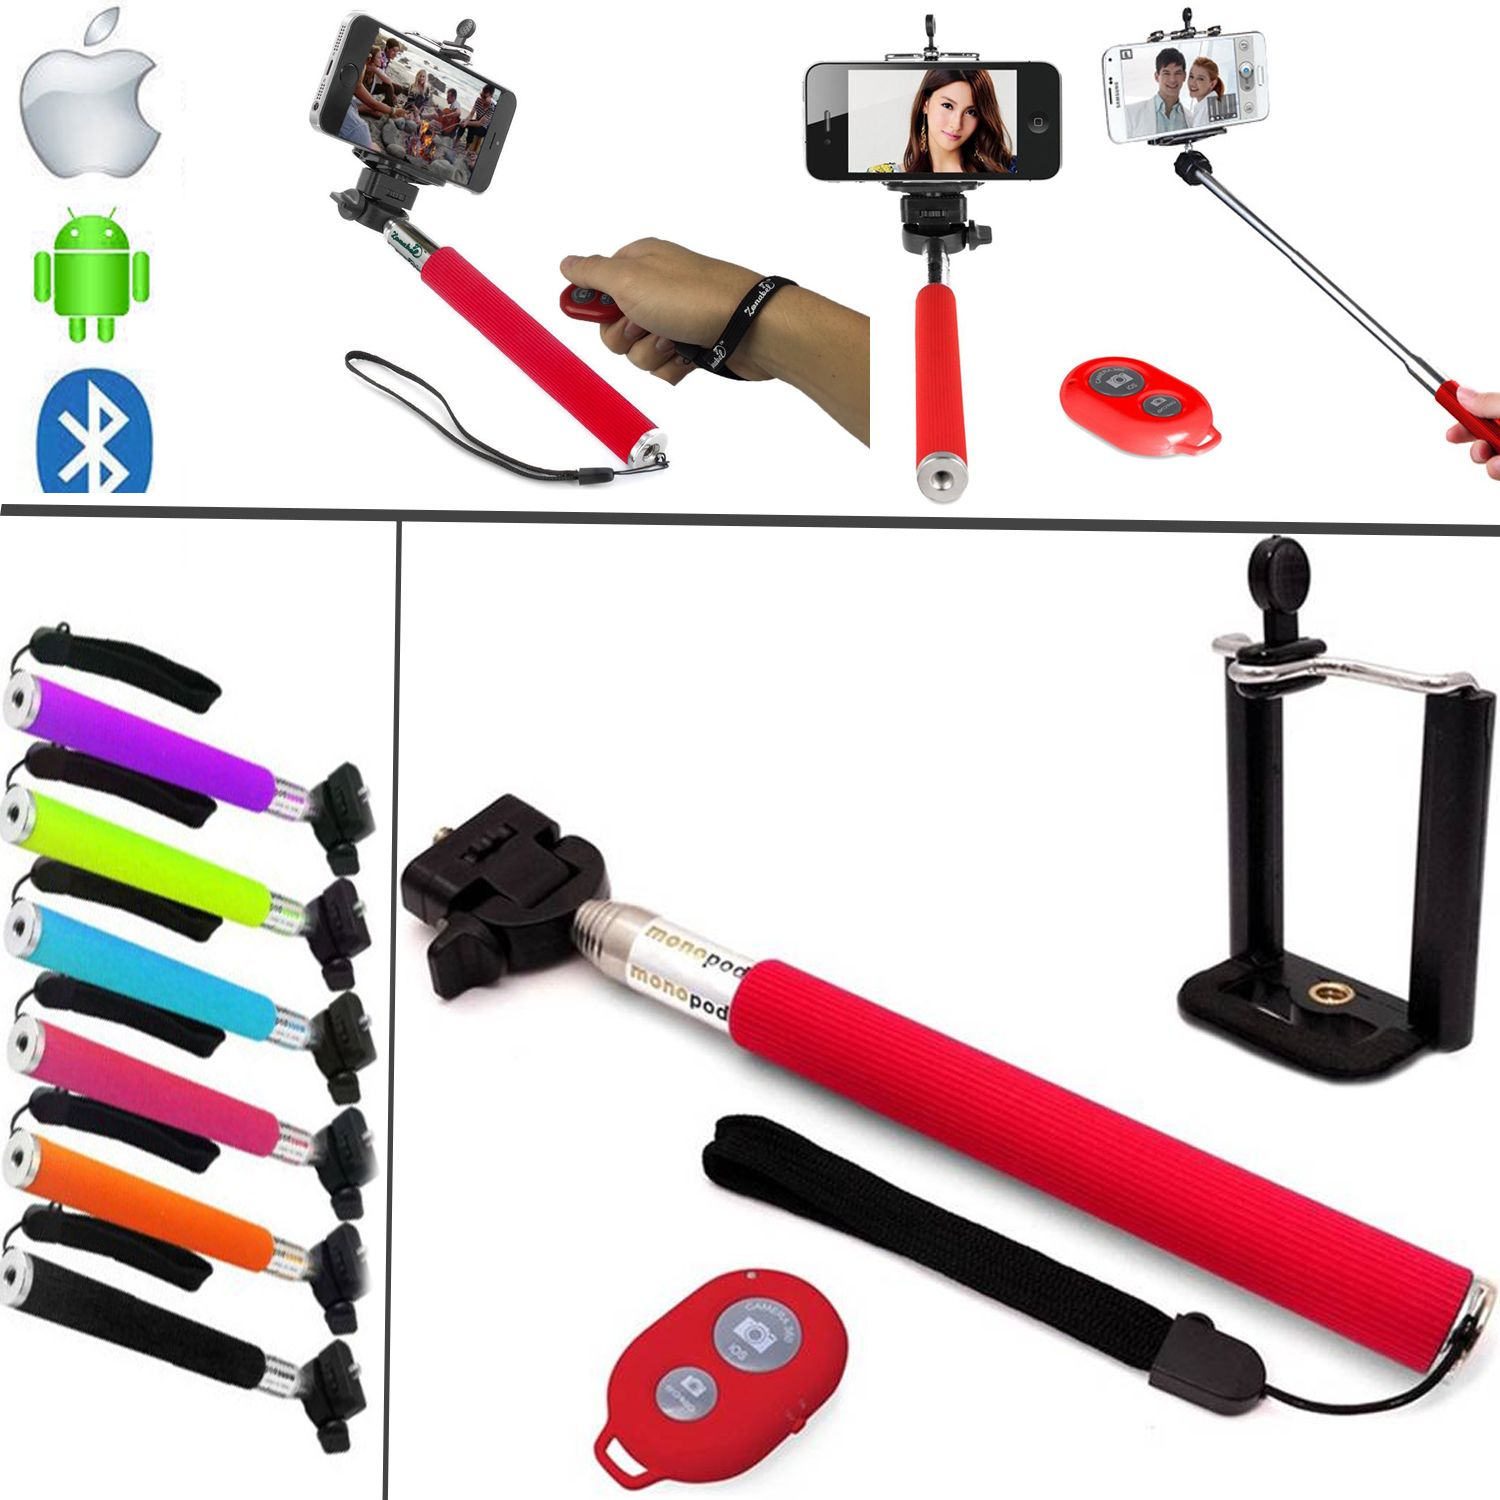 telescopic selfie stick handheld monopod remote for iphone 6 6g 6 plus ebay. Black Bedroom Furniture Sets. Home Design Ideas